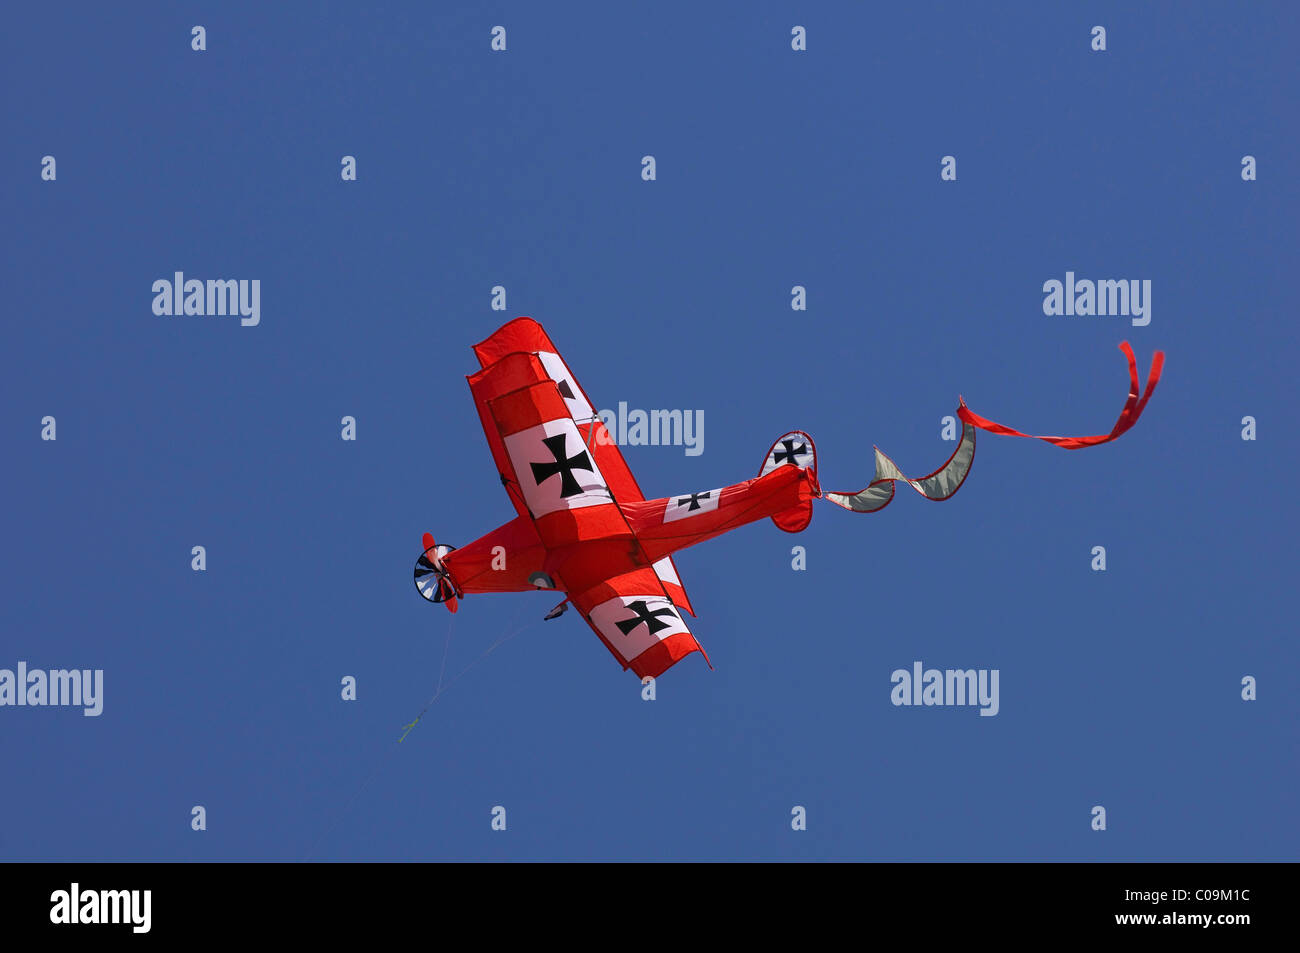 Red double-decker as a kite in flight - Stock Image